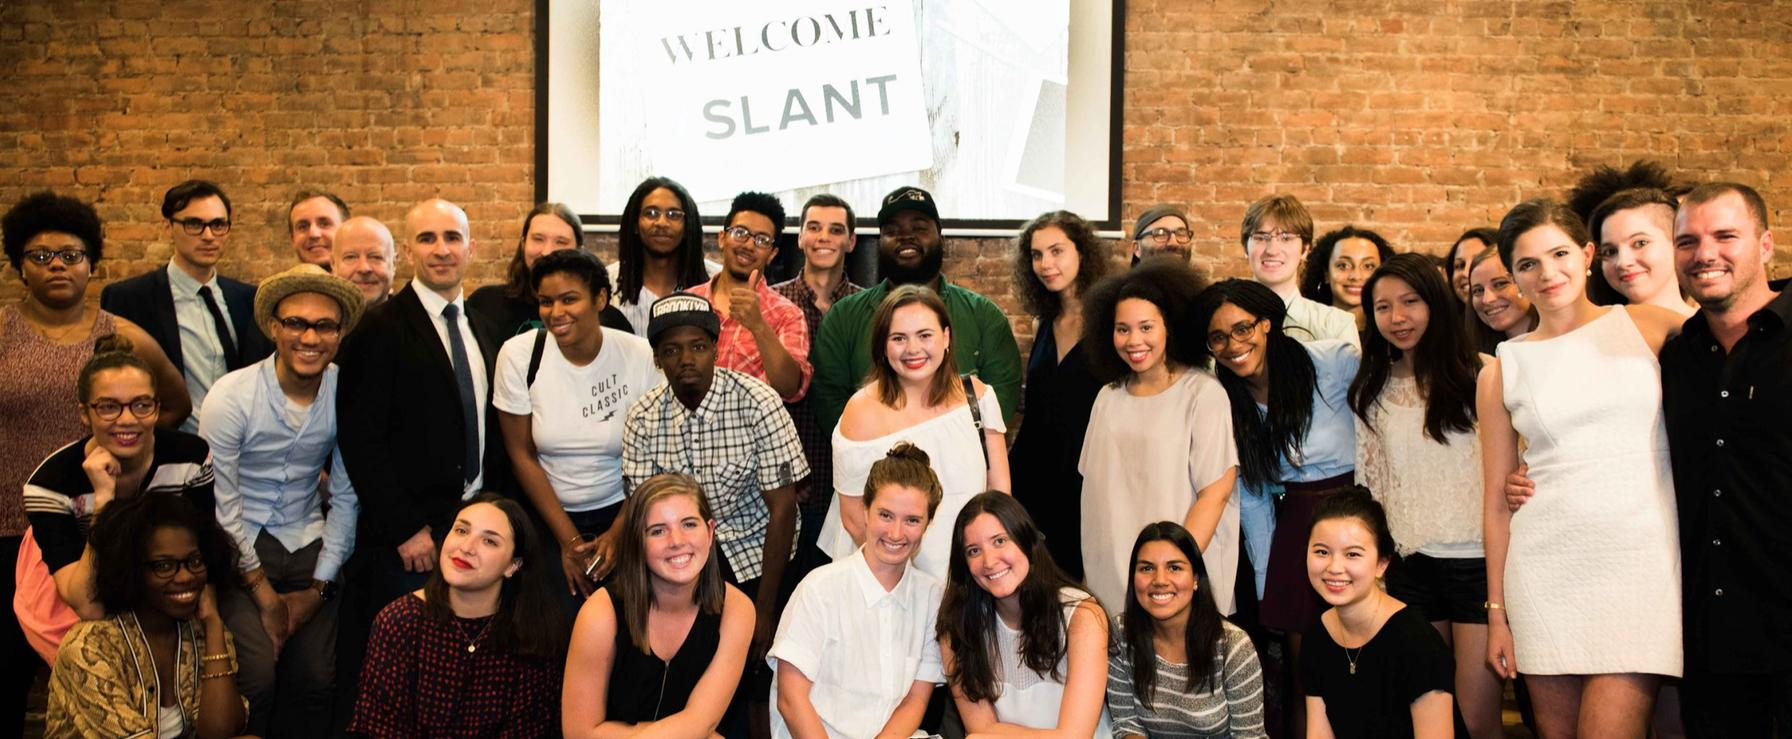 Slant wants to transform online media by paying writers 70% of ad revenue — but will that make a difference?